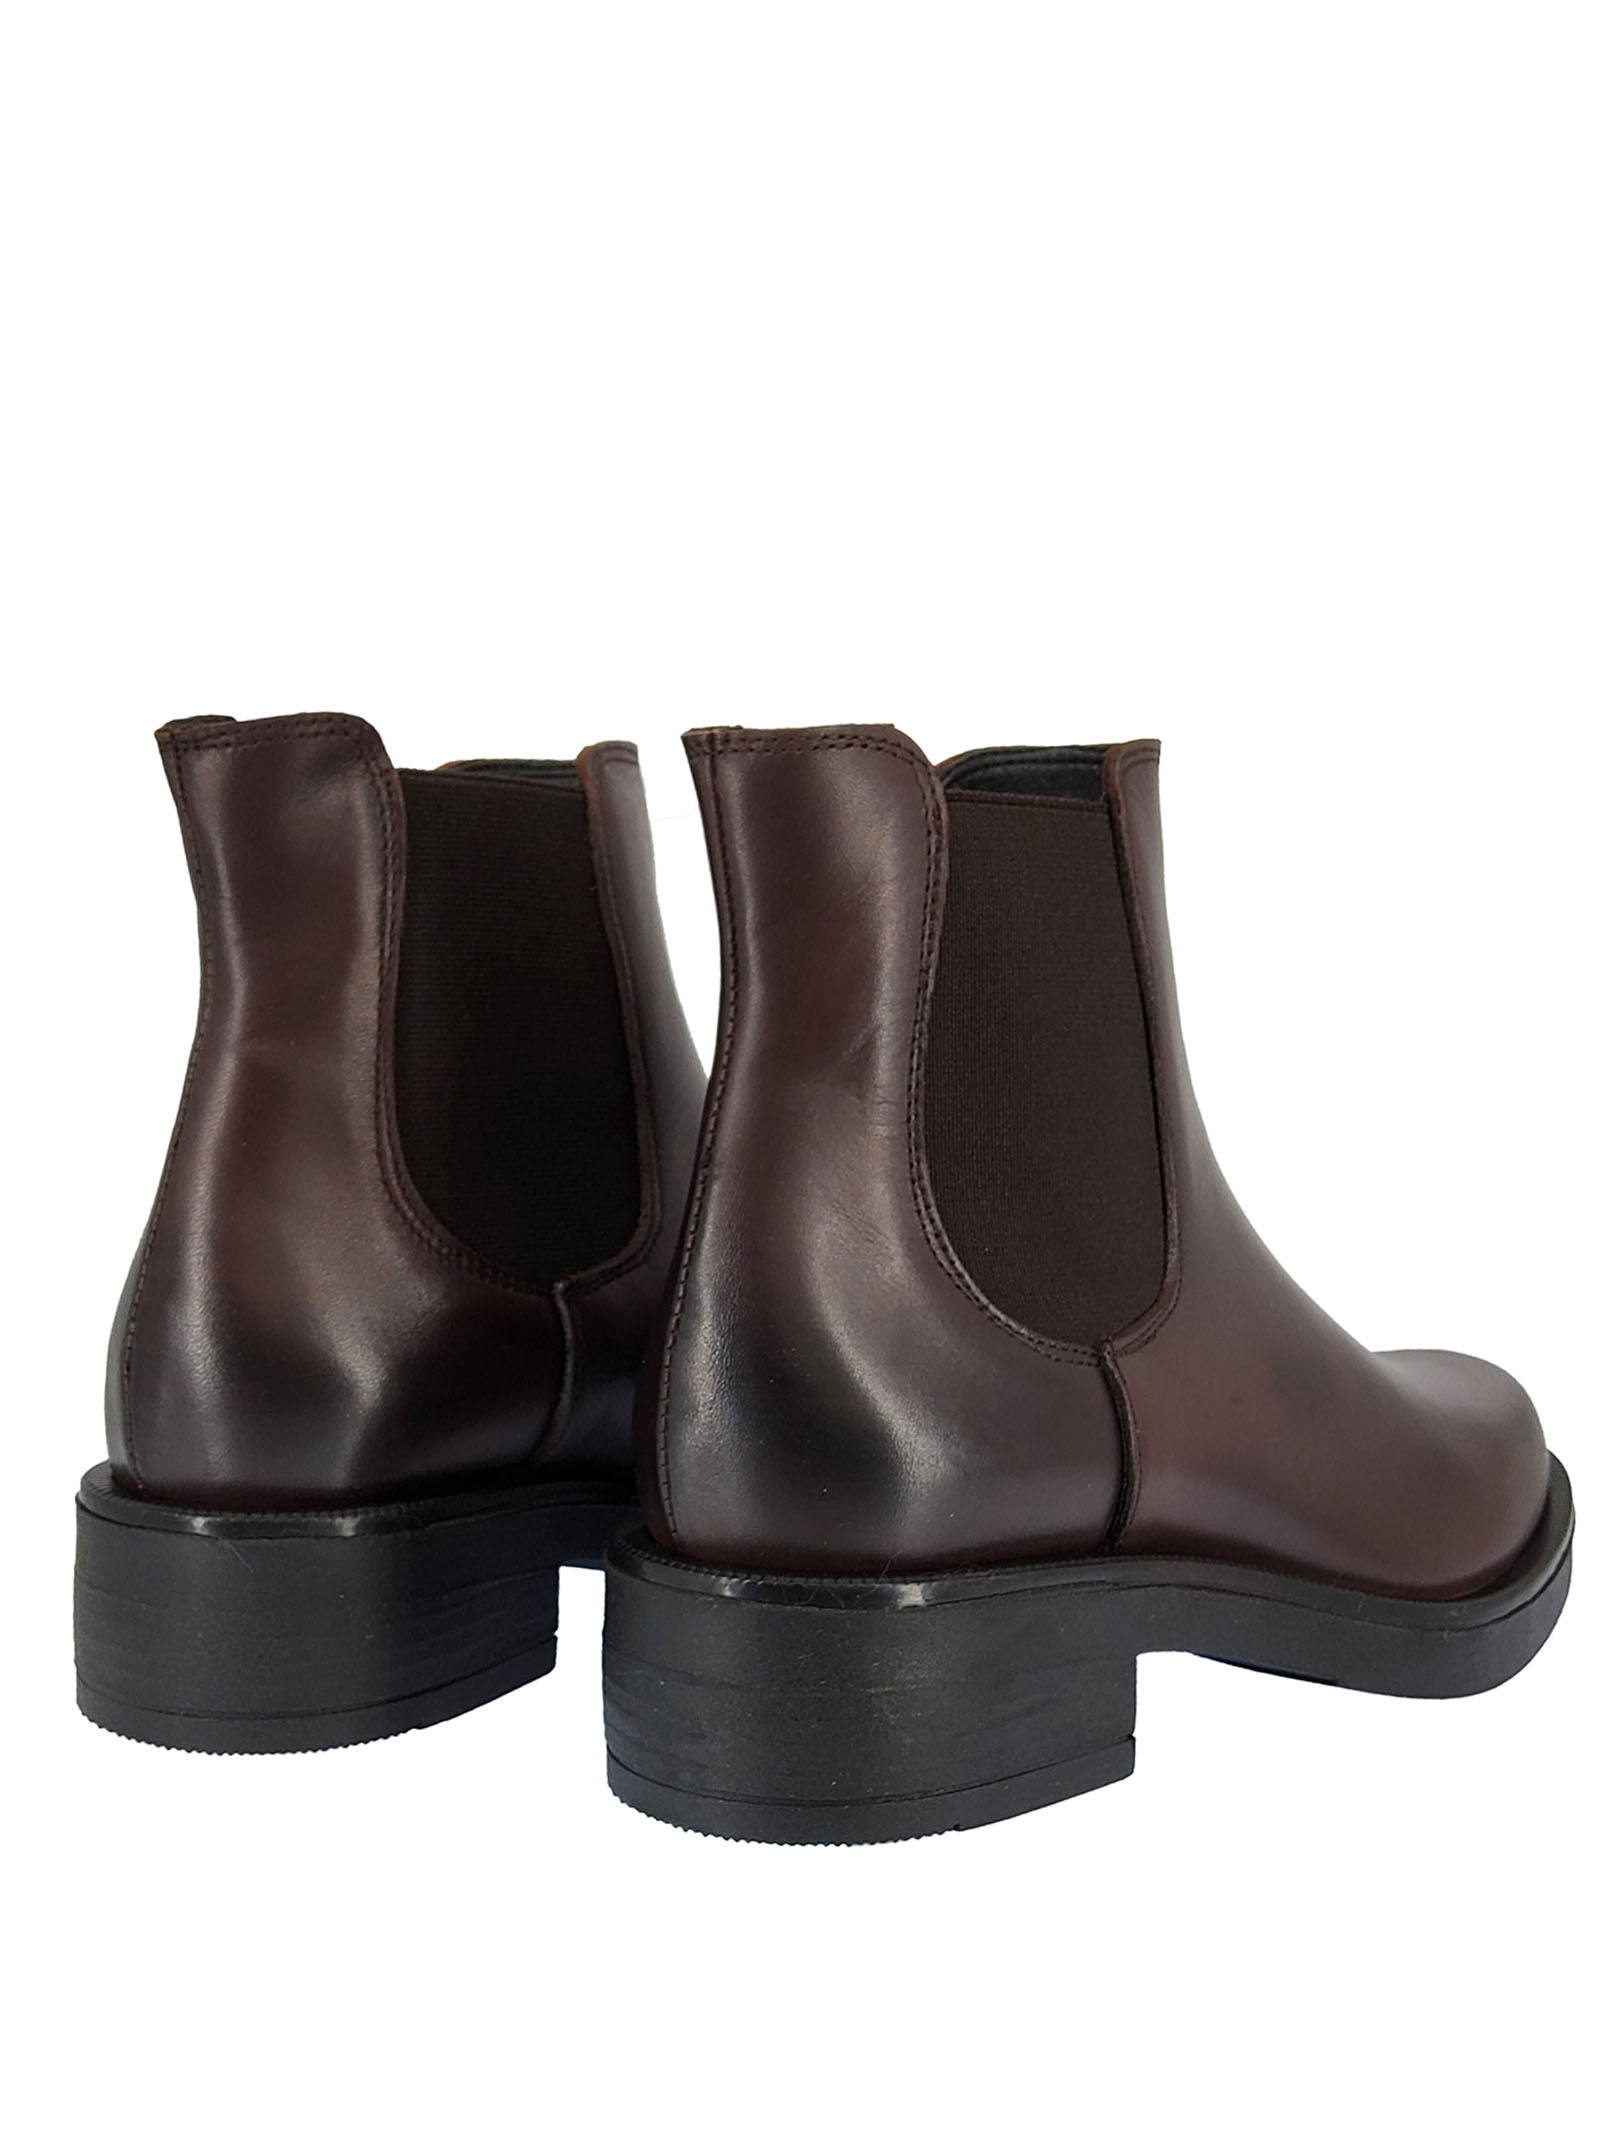 Women's Beatles Ankle Boots in Brown Leather with Matching Side Elastics Round Toe and Rubber Sole  Spatarella | Ankle Boots | TR4021013